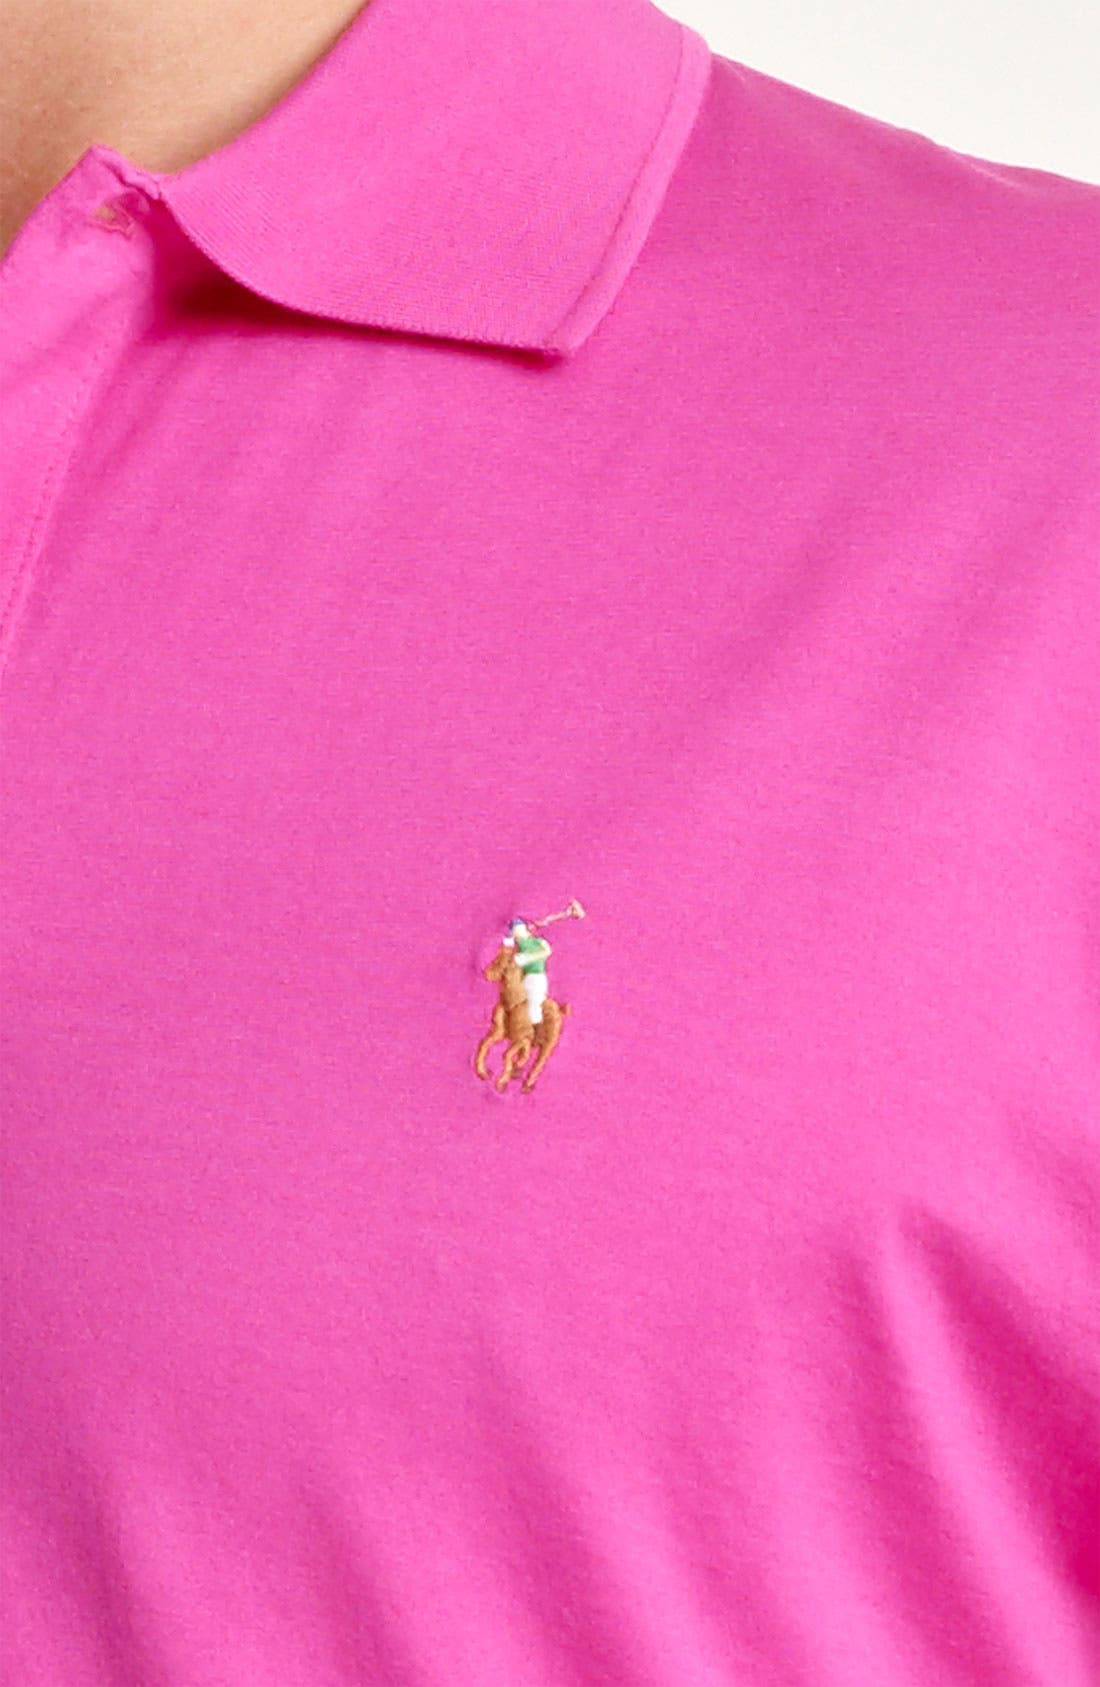 Alternate Image 3  - Polo Ralph Lauren Classic Fit Polo